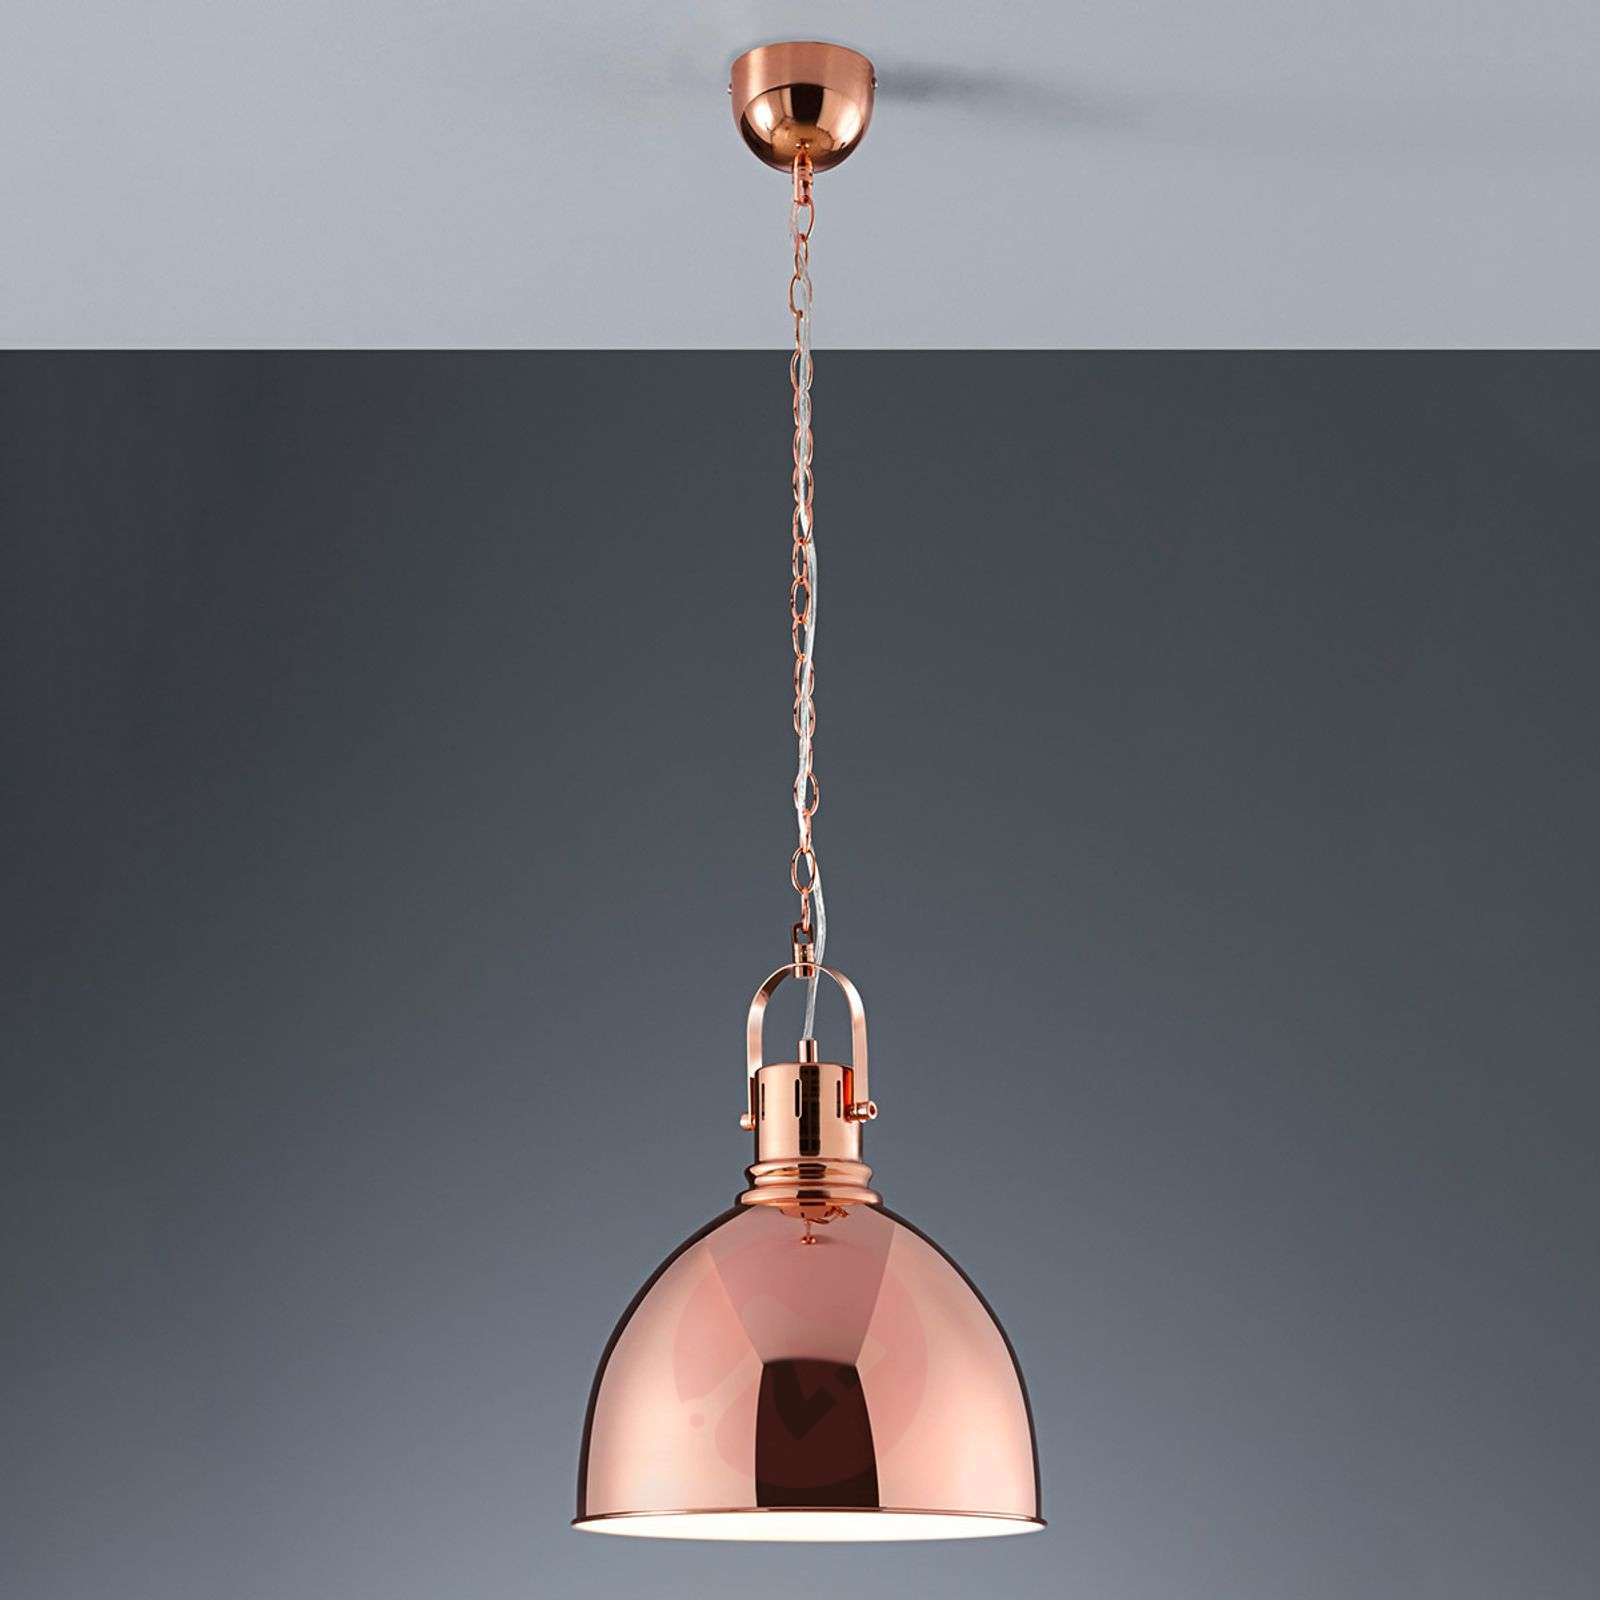 Tores hanging light, copper-9004917-01